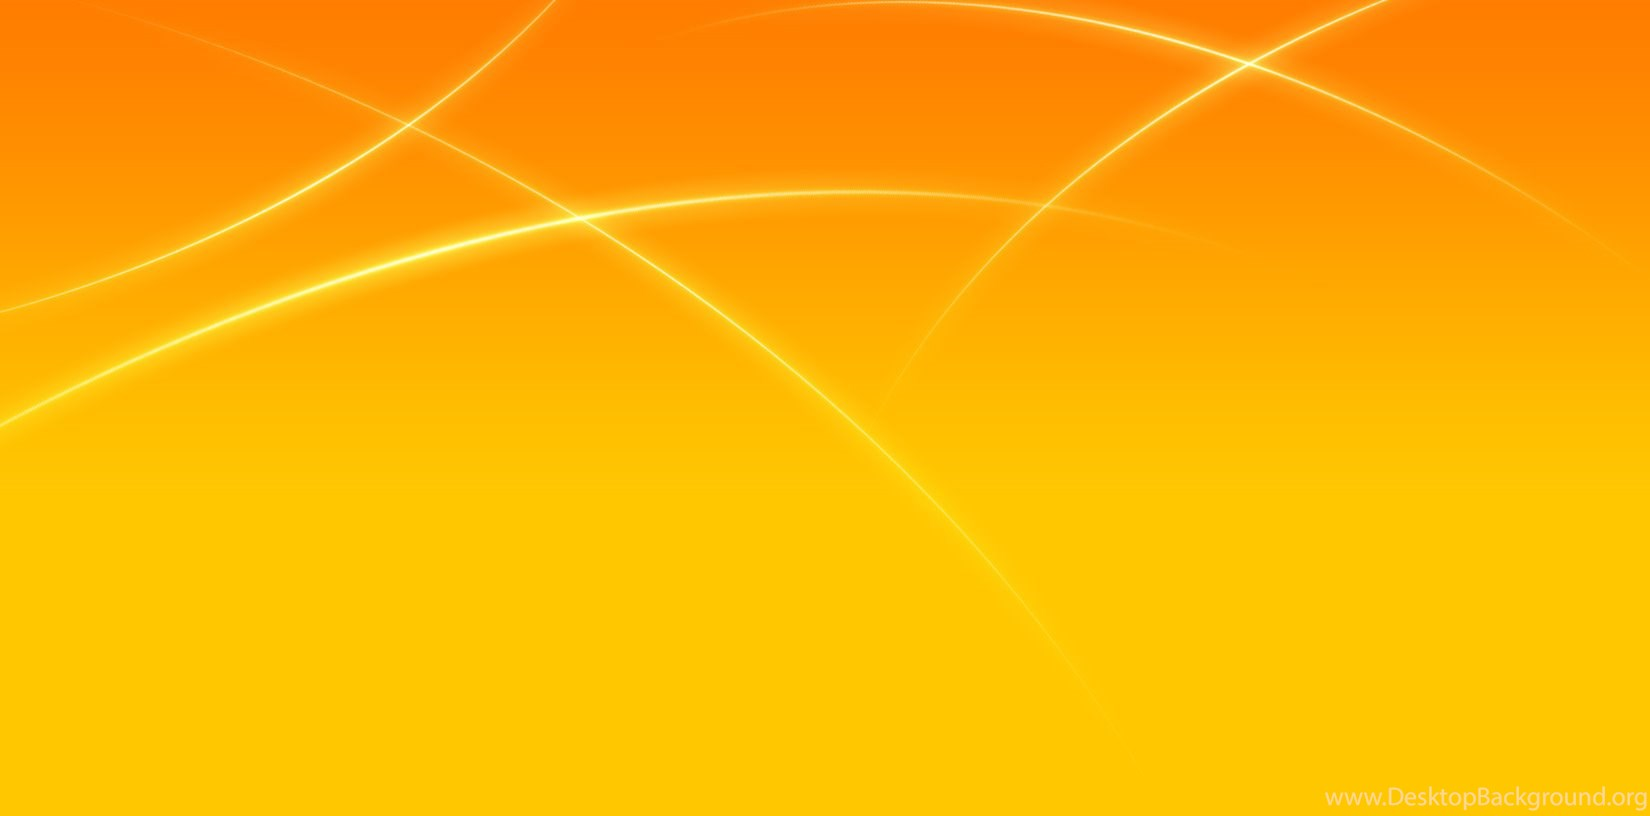 Desktop Orange Plain Backgrounds Wallpapers 3d Hd Pictures